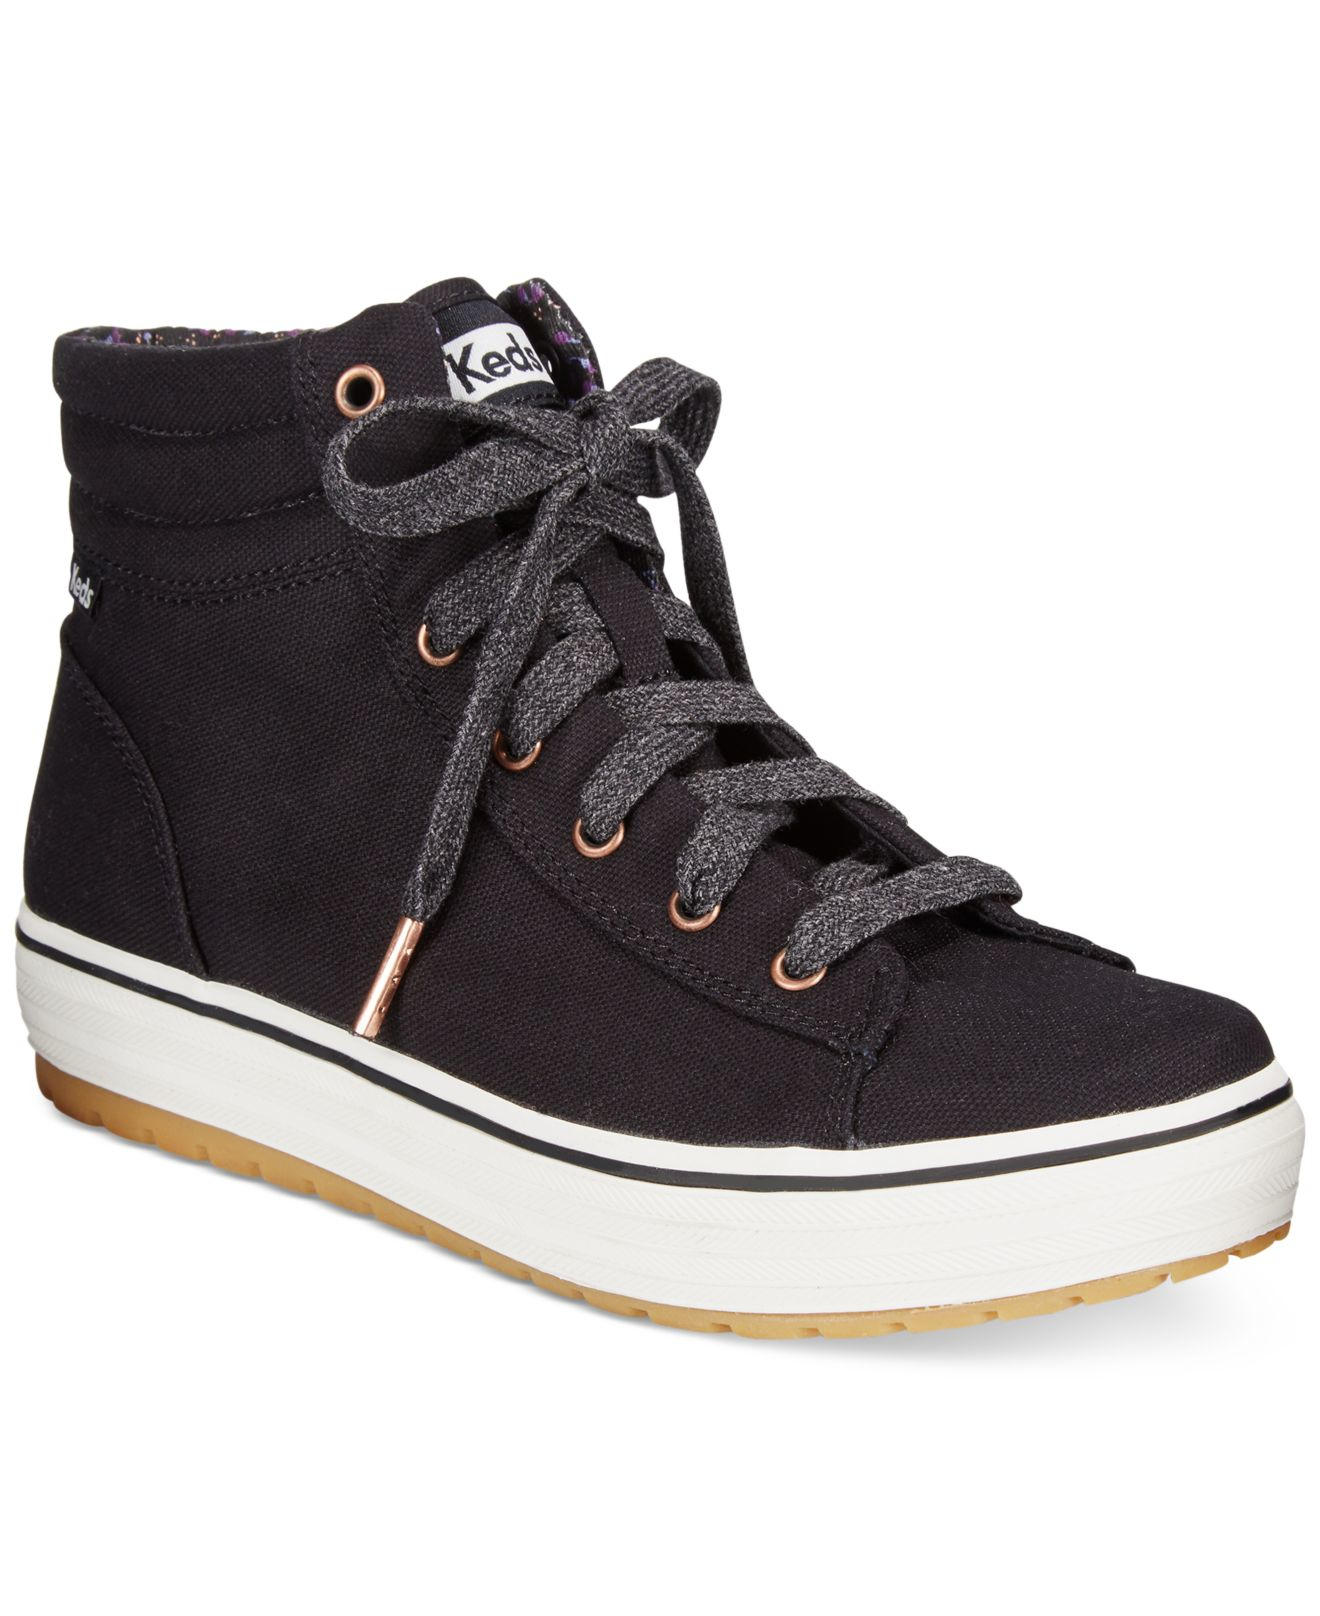 high top sneakers for women - photo #27